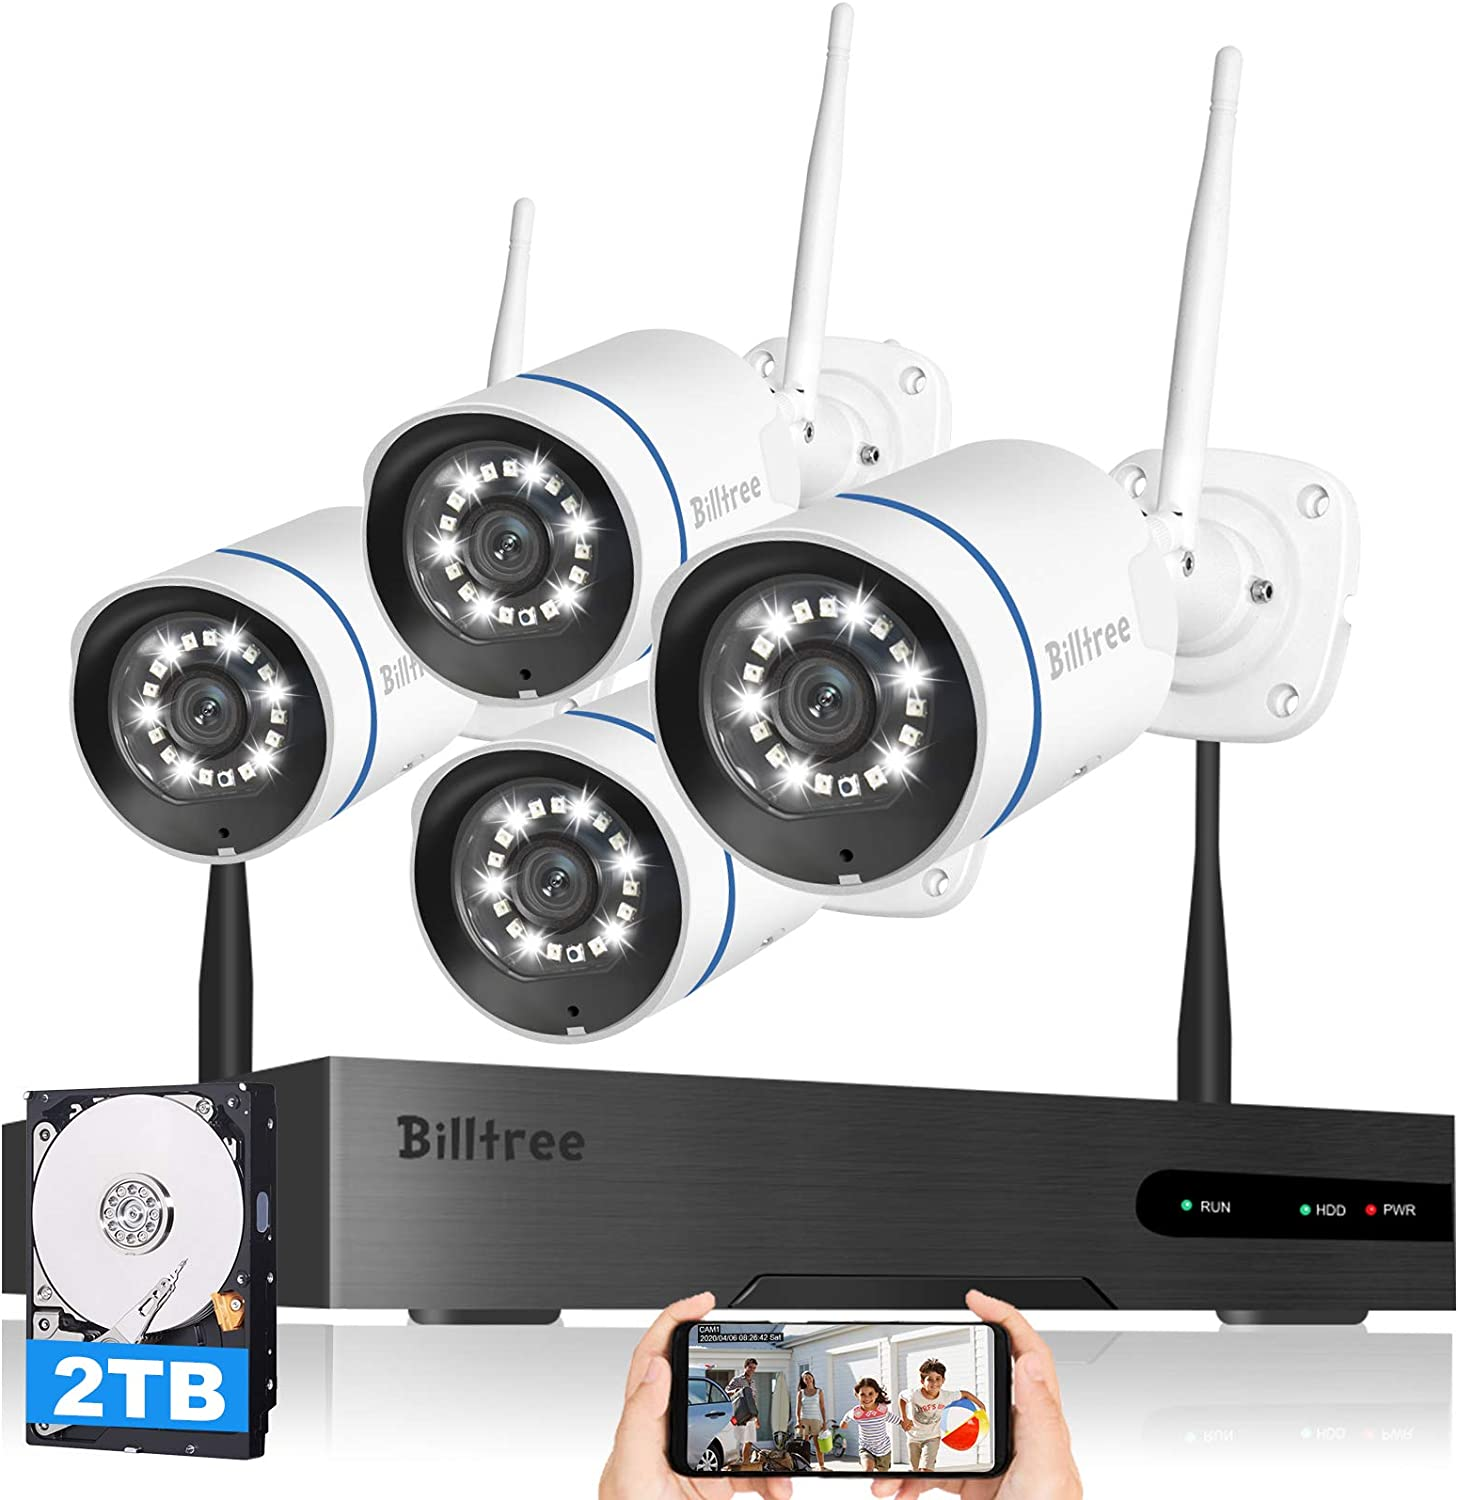 【Floodlight & Siren Alarm】Wireless Security Camera System, Billtree 3MP Ultra-HD 8CH NVR with 2TB Hard Drive, 4Pcs 3MP WiFi Surveillance Cameras with AI Human Detection,2 Way Audio, Color Night Vision